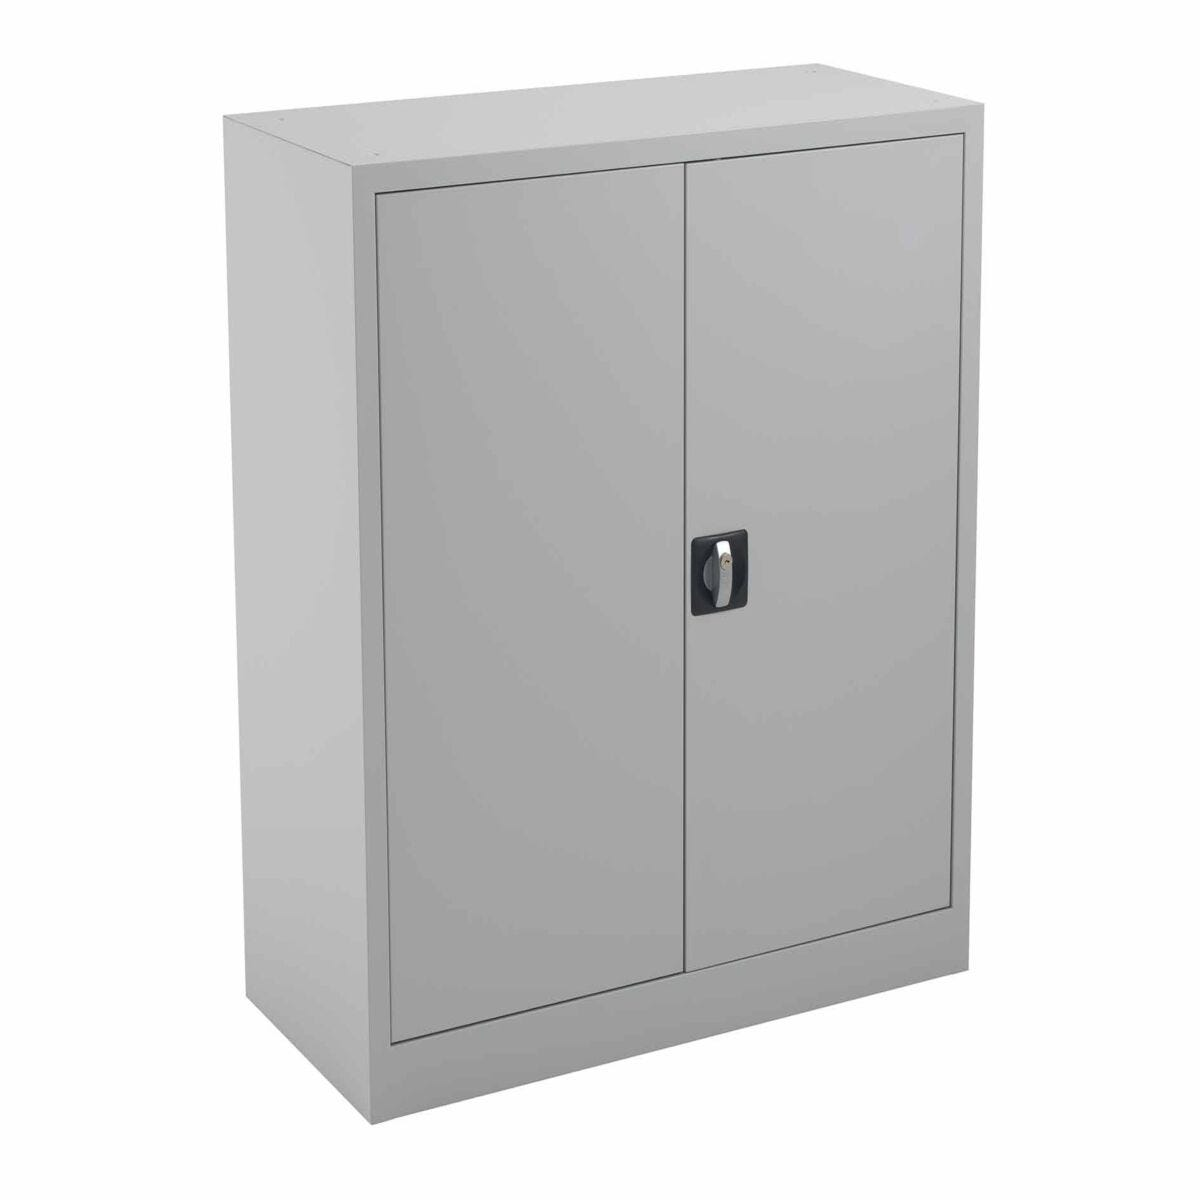 TC Office Talos Double Lockable Door Steel Cupboard with 2 Shelves 1000mm Height